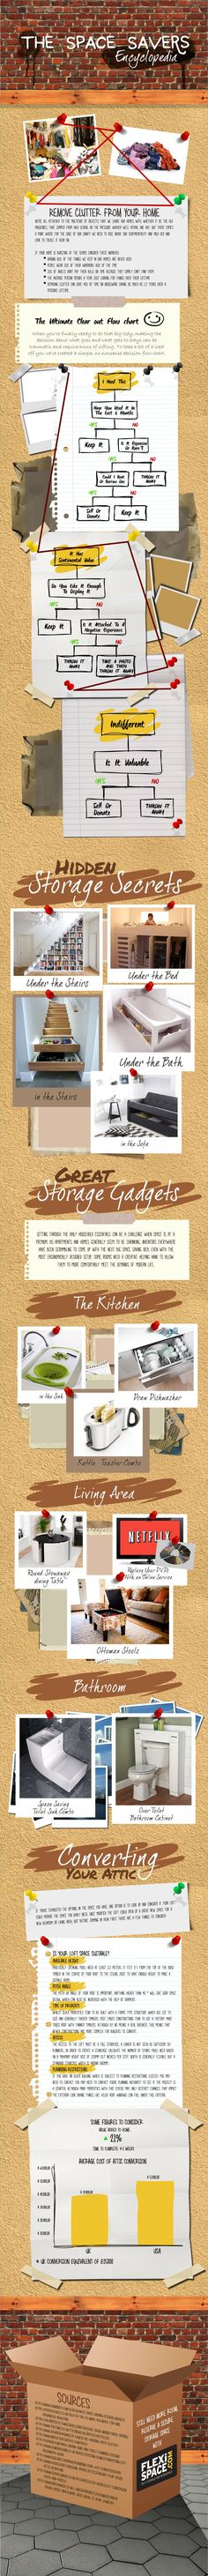 Declutter With The Space Savers Encyclopedia Infographic